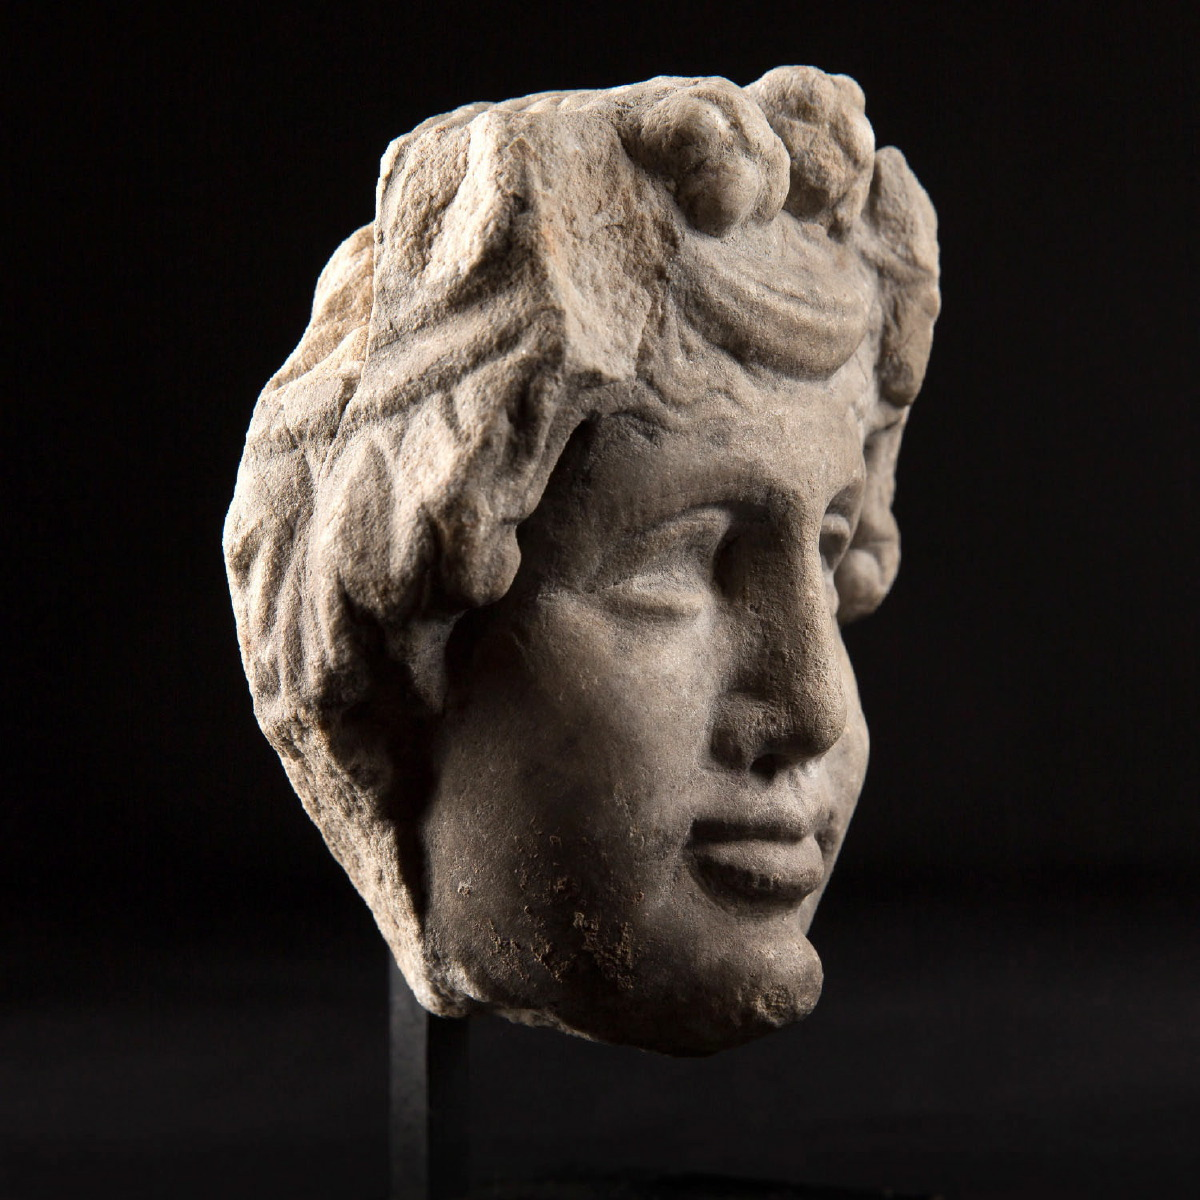 Photo of dionysus-marble-head-rome-antiquities-ancient-art-galerie-golconda-certificatmuseum-quality